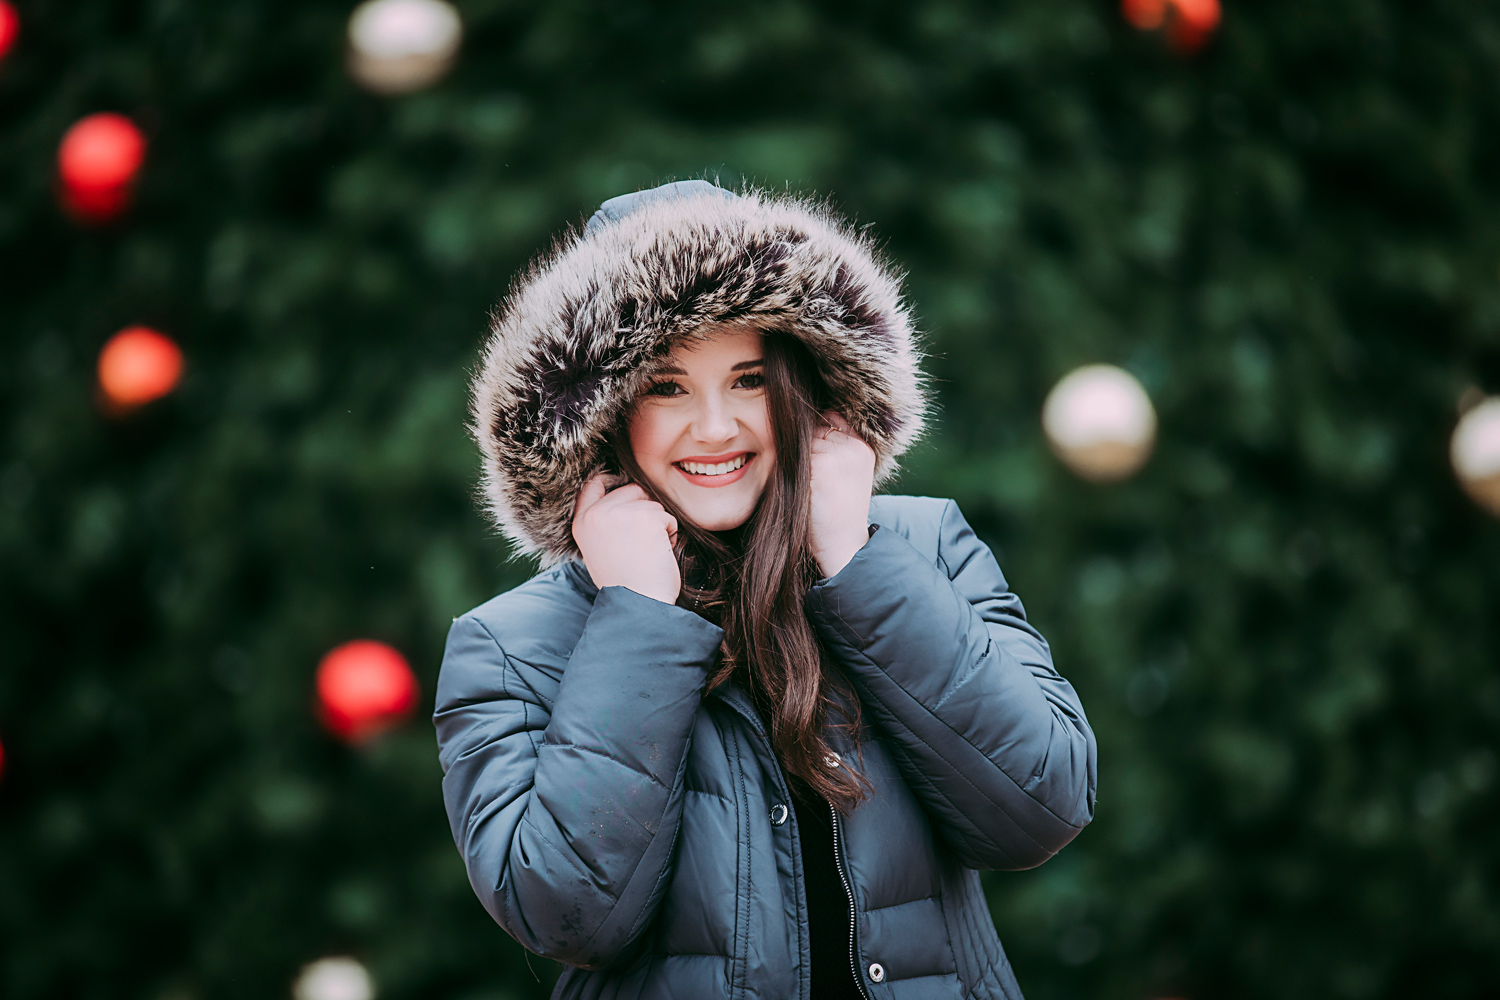 Oklahoma senior girl wearing coat with fuzzy hood, standing in front of Christmas tree in downtown Oklahoma City by Amanda Lynn Photography.